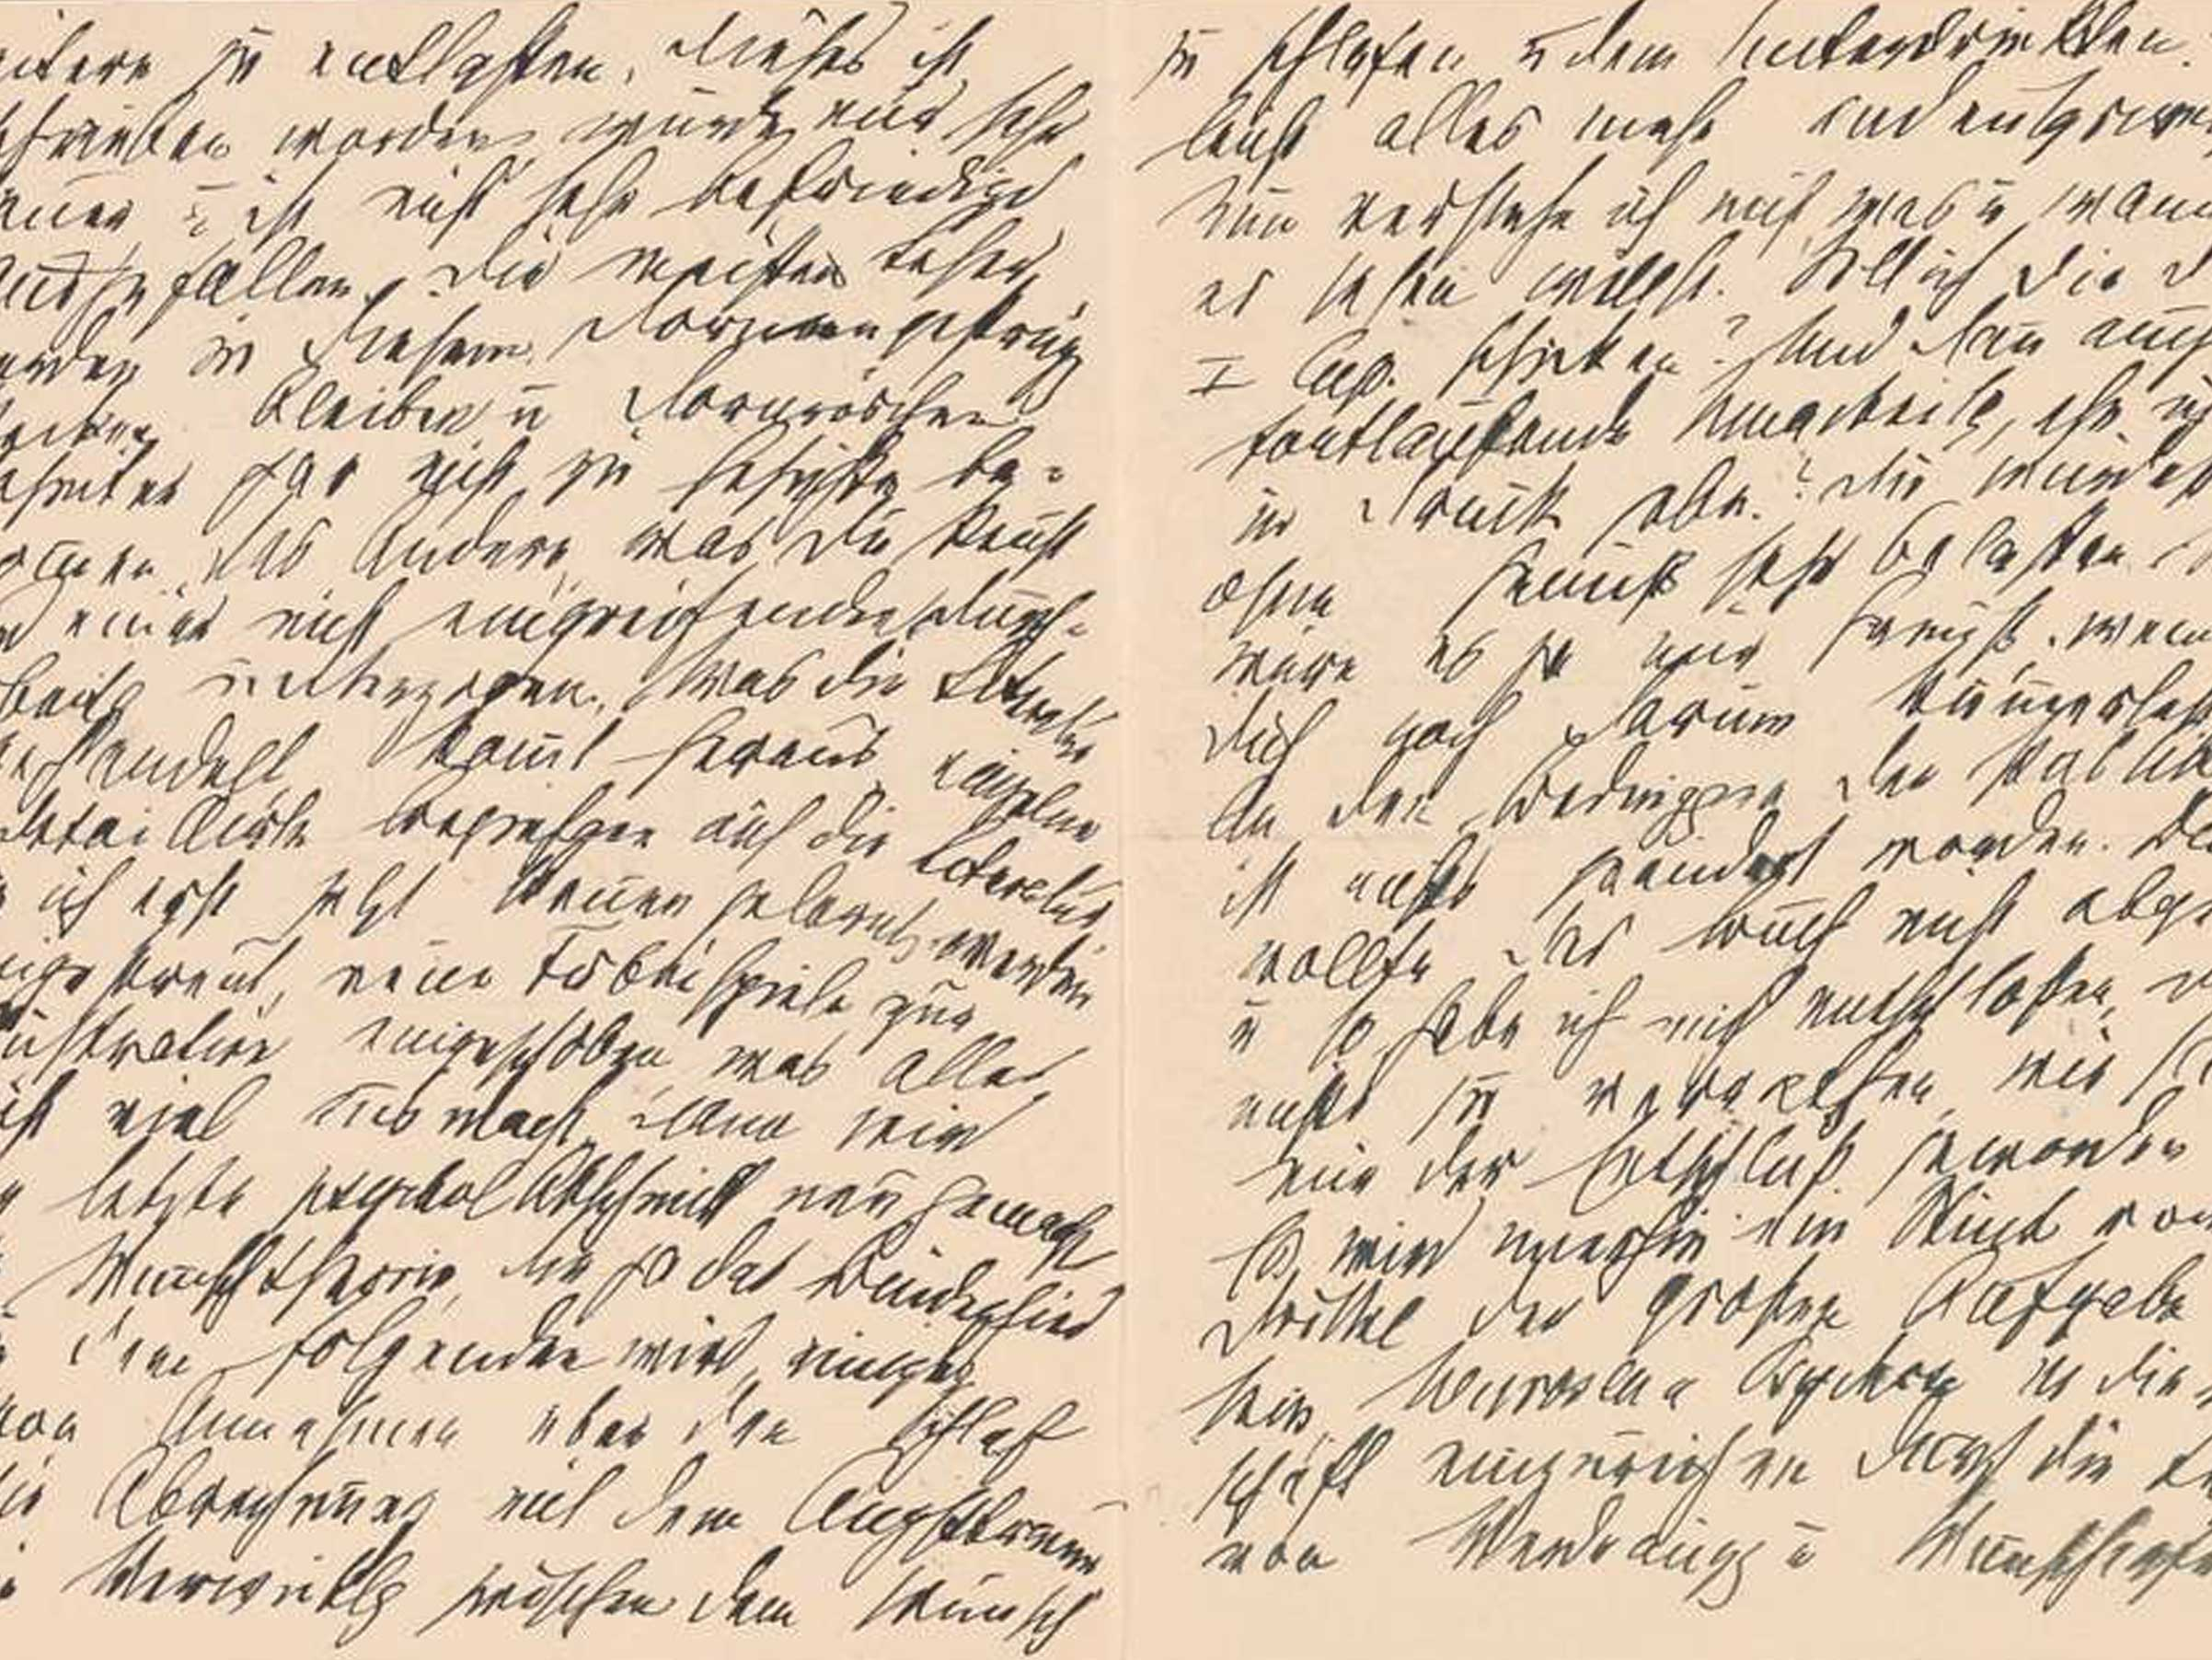 Image from Sigmund Freud Papers, General Correspondence, 1871-1896, US Library of Congress.